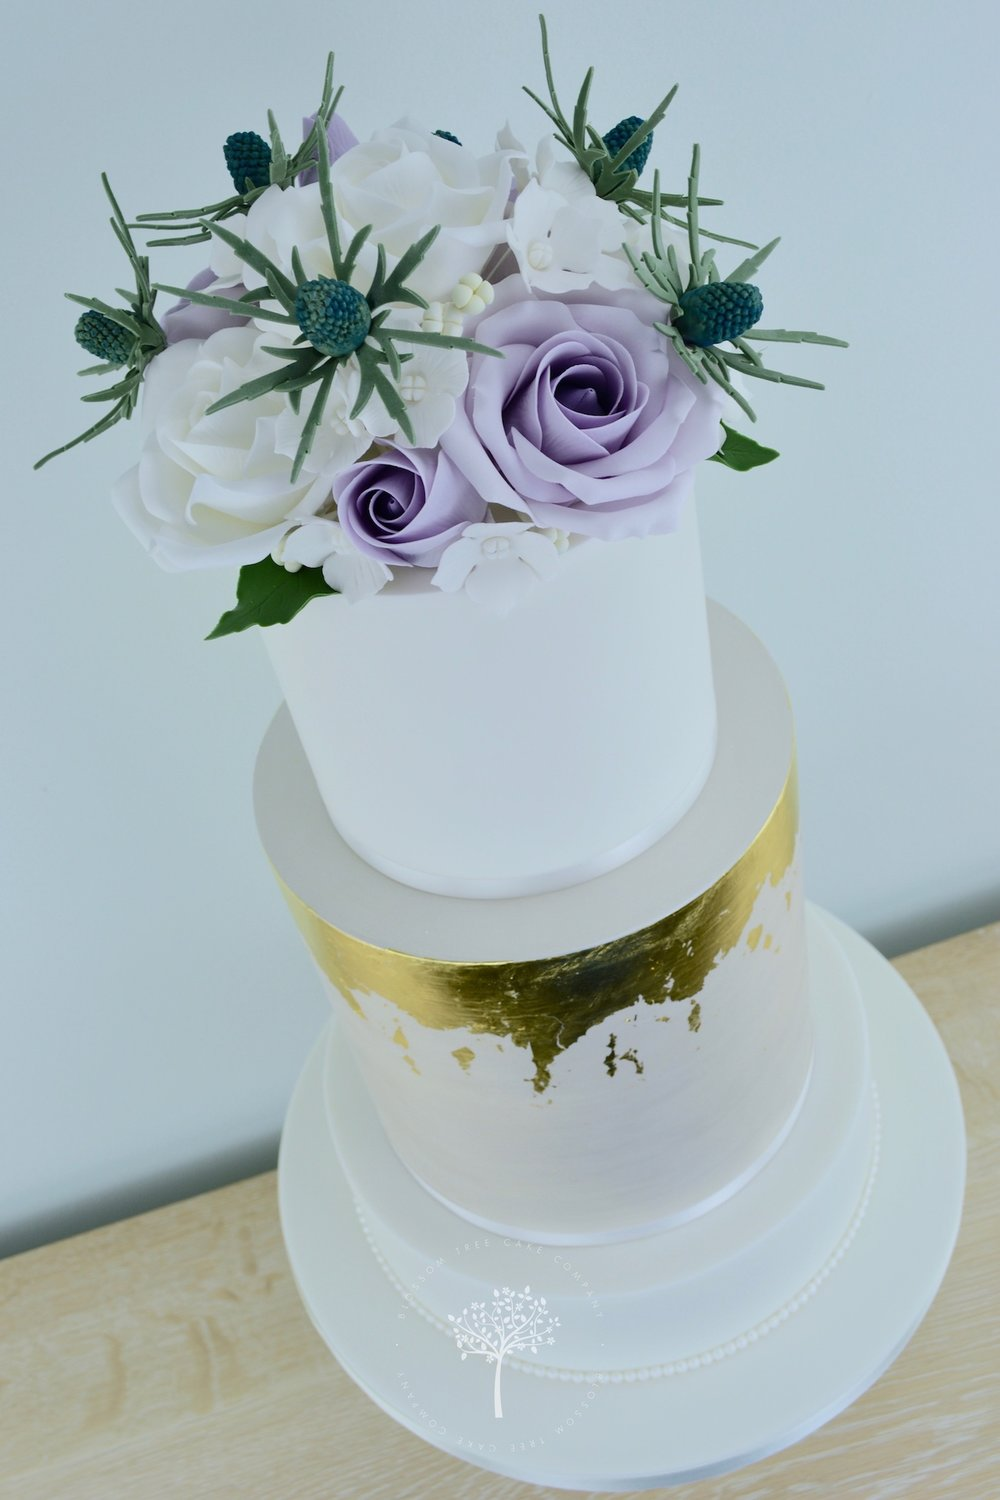 Sea Holly and Roses wedding cake by Blossom Tree Cake Company Harrogate North Yorkshire - angle.jpg